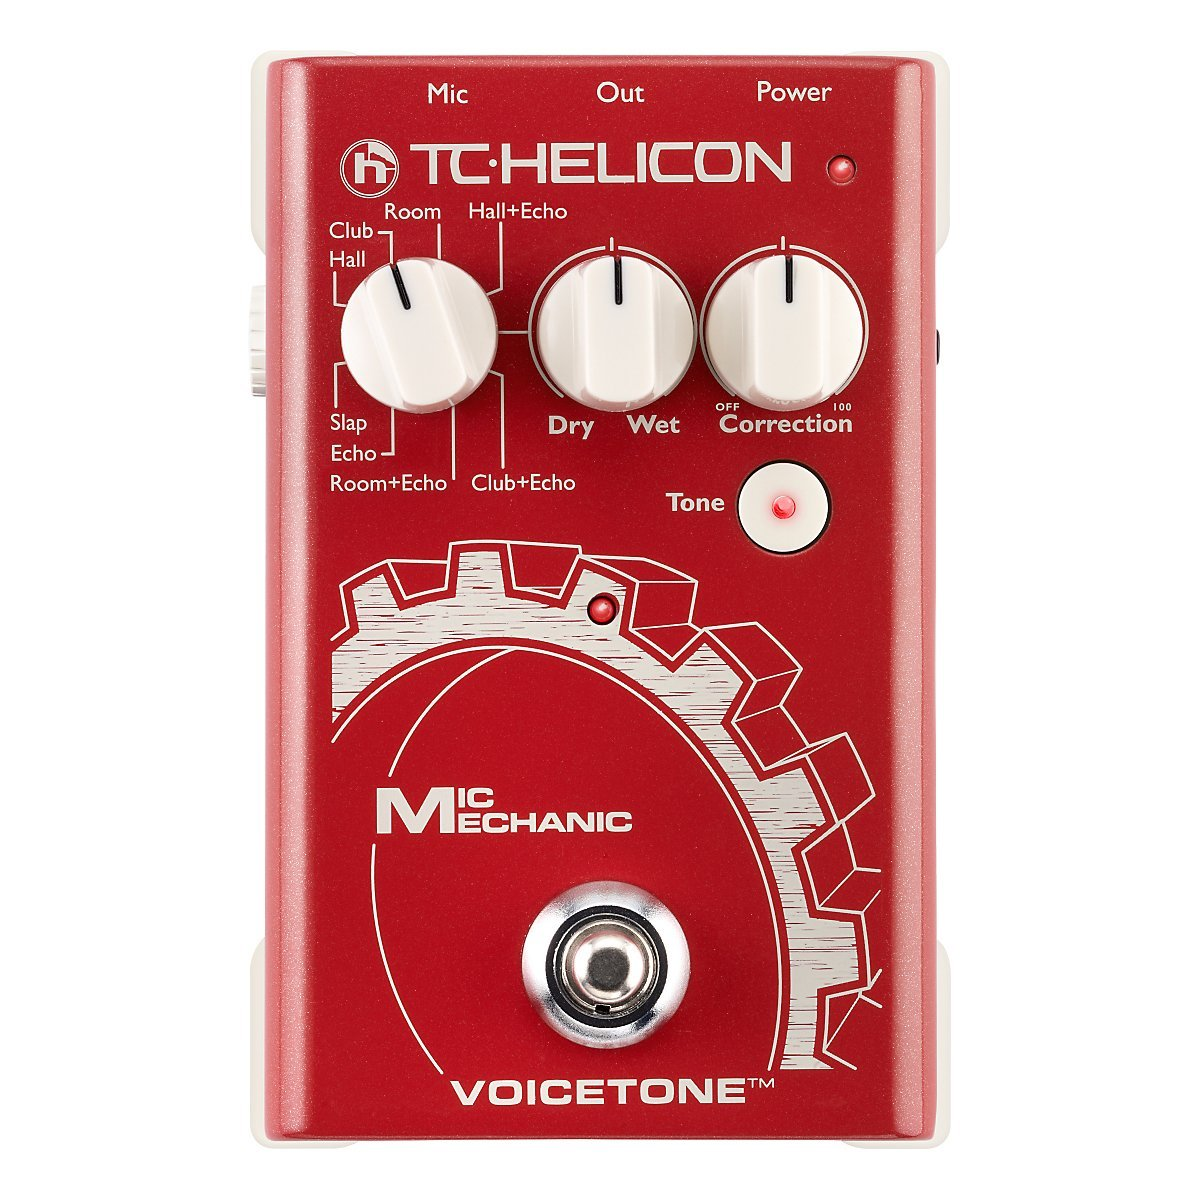 TC Helicon Voice Tone Mic Mechanic Vocal Effects Pedal